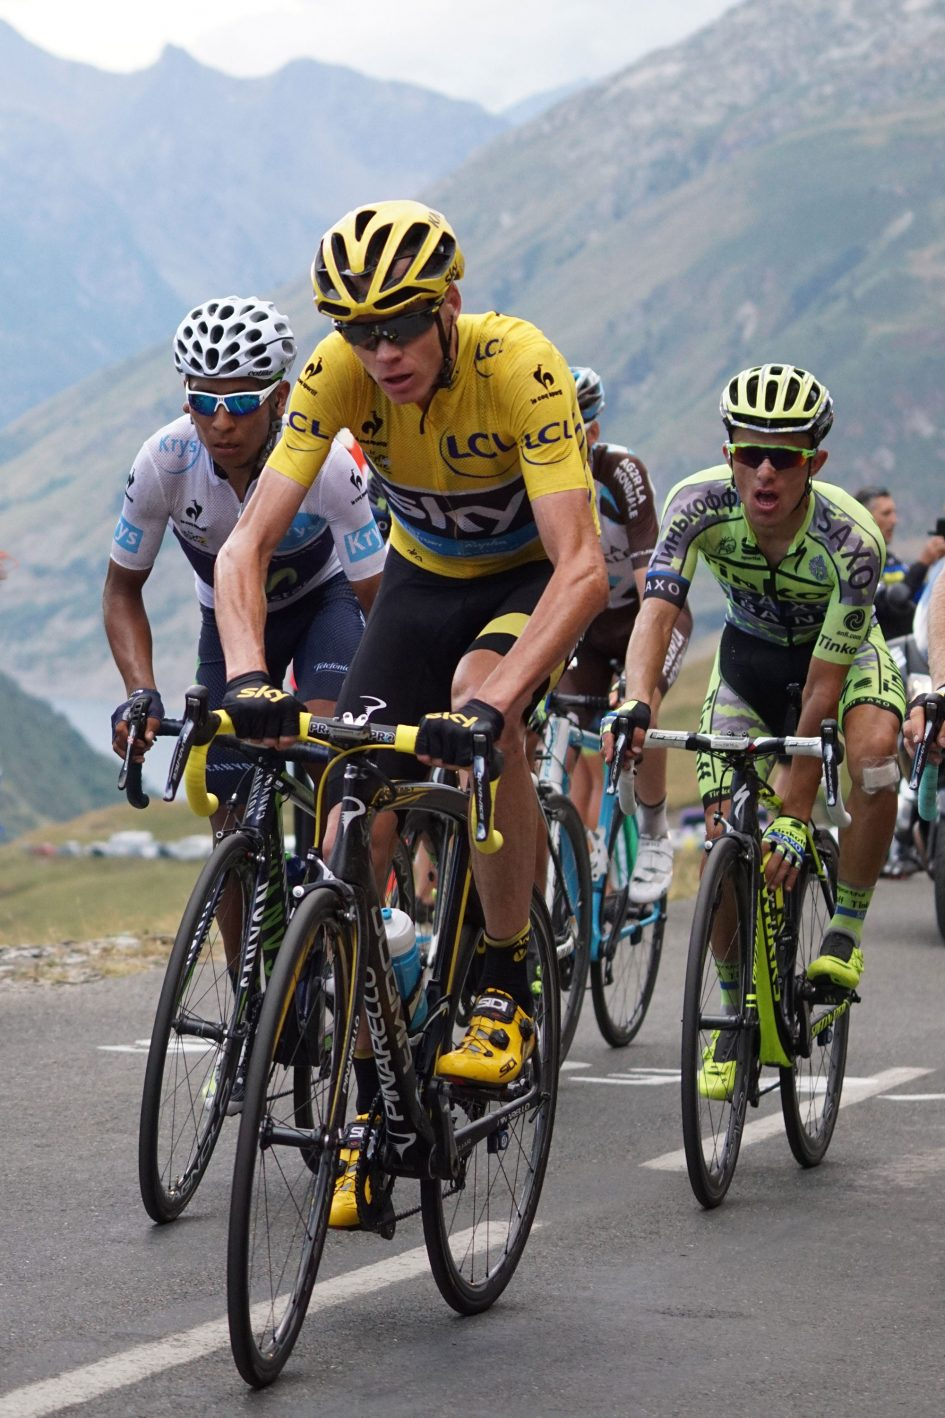 froome-quintana-dsc06980-3000